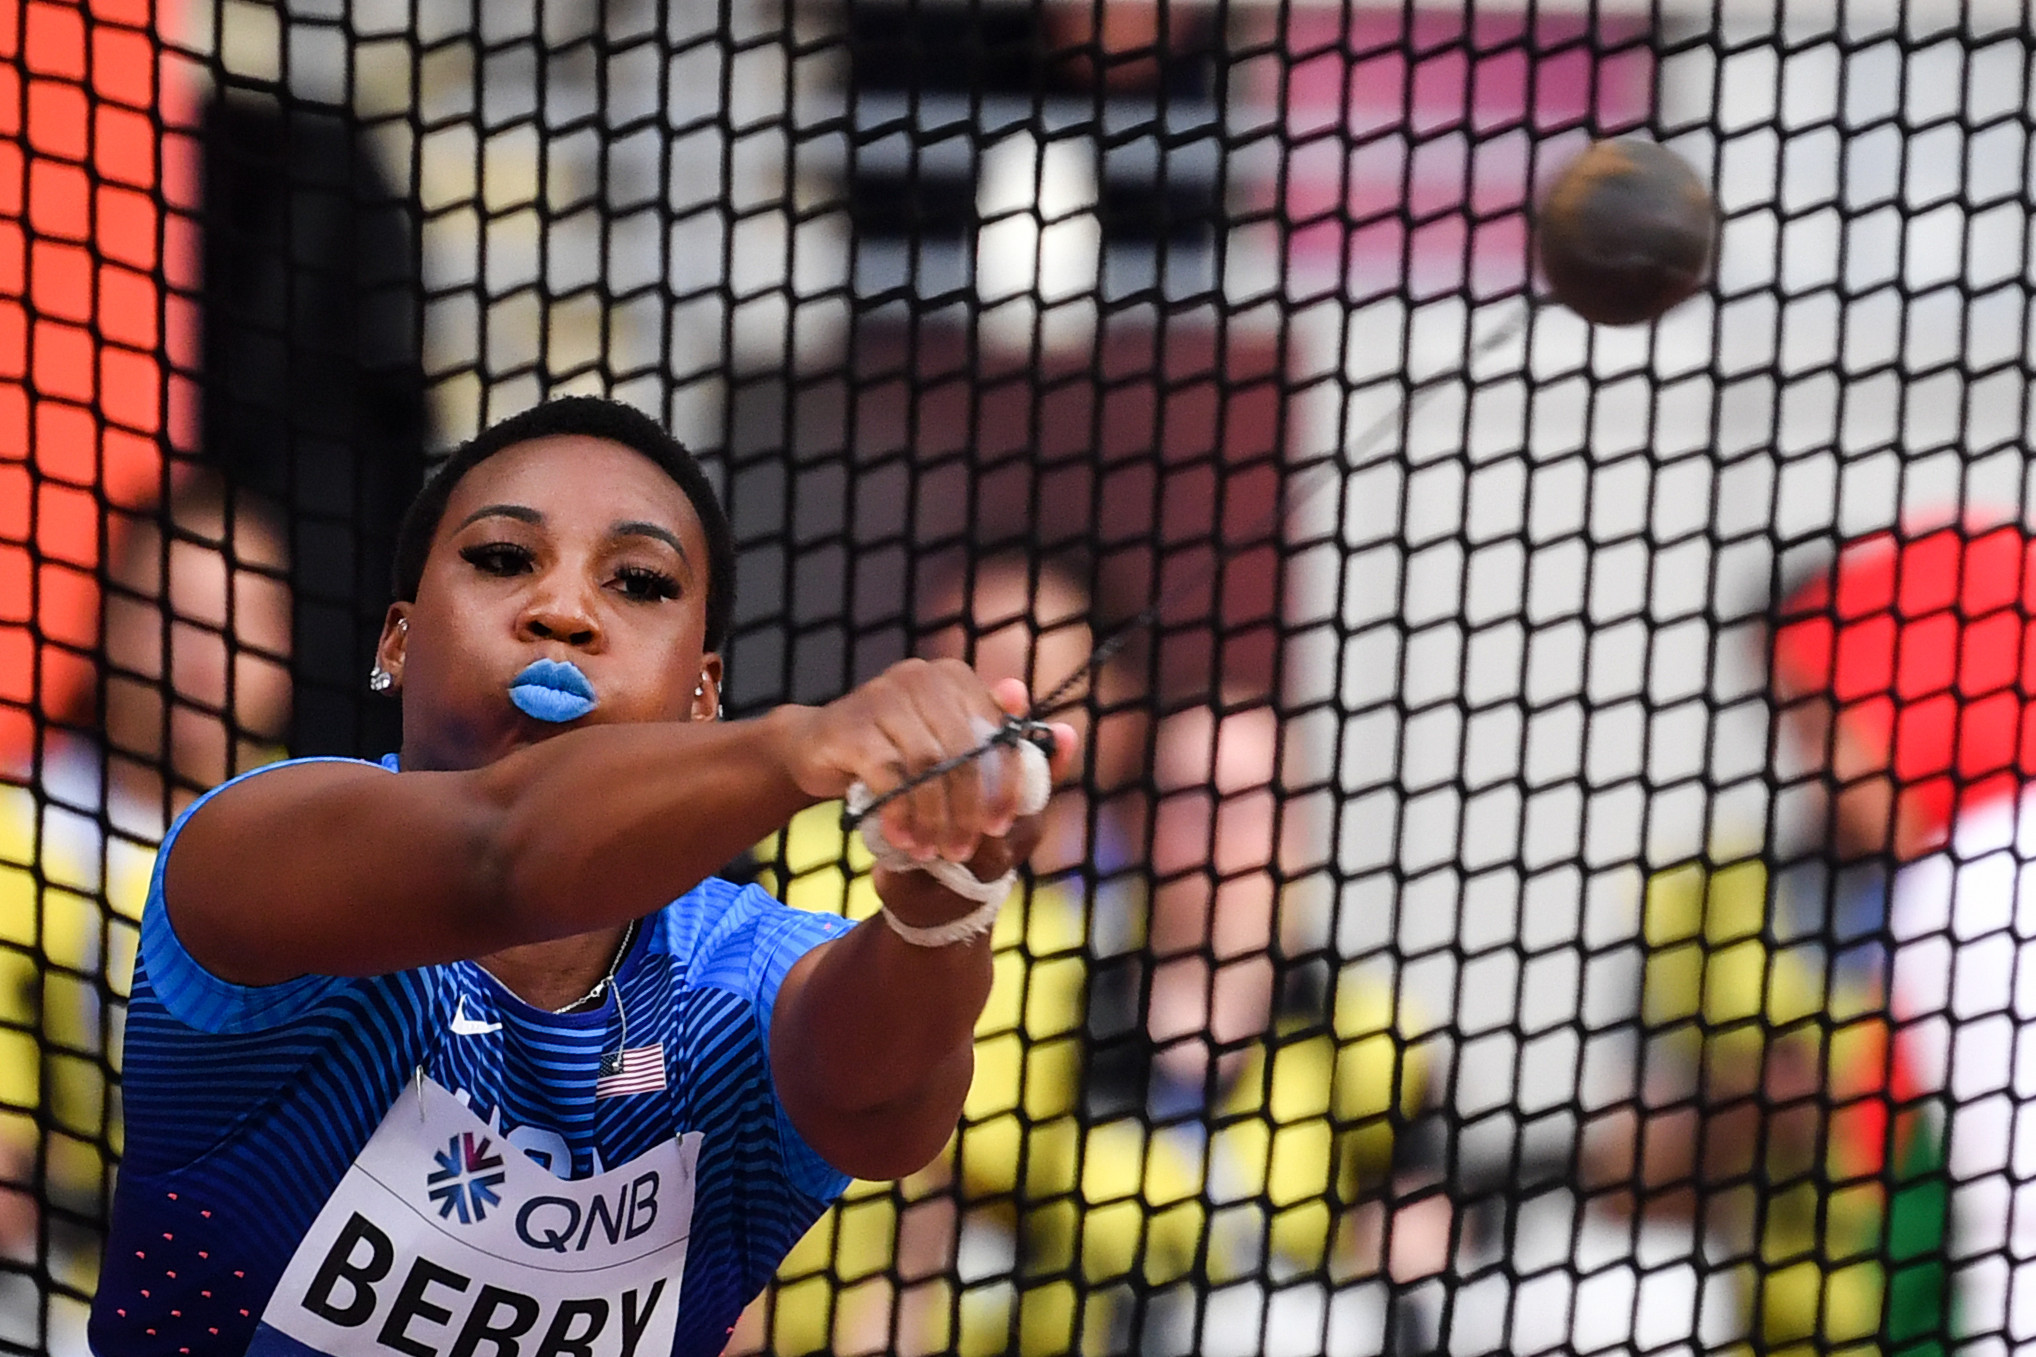 Hammer thrower Gwen Berry accused the USOPC of hypocrisy after the organisation released an anti-racism statement ©Getty Images